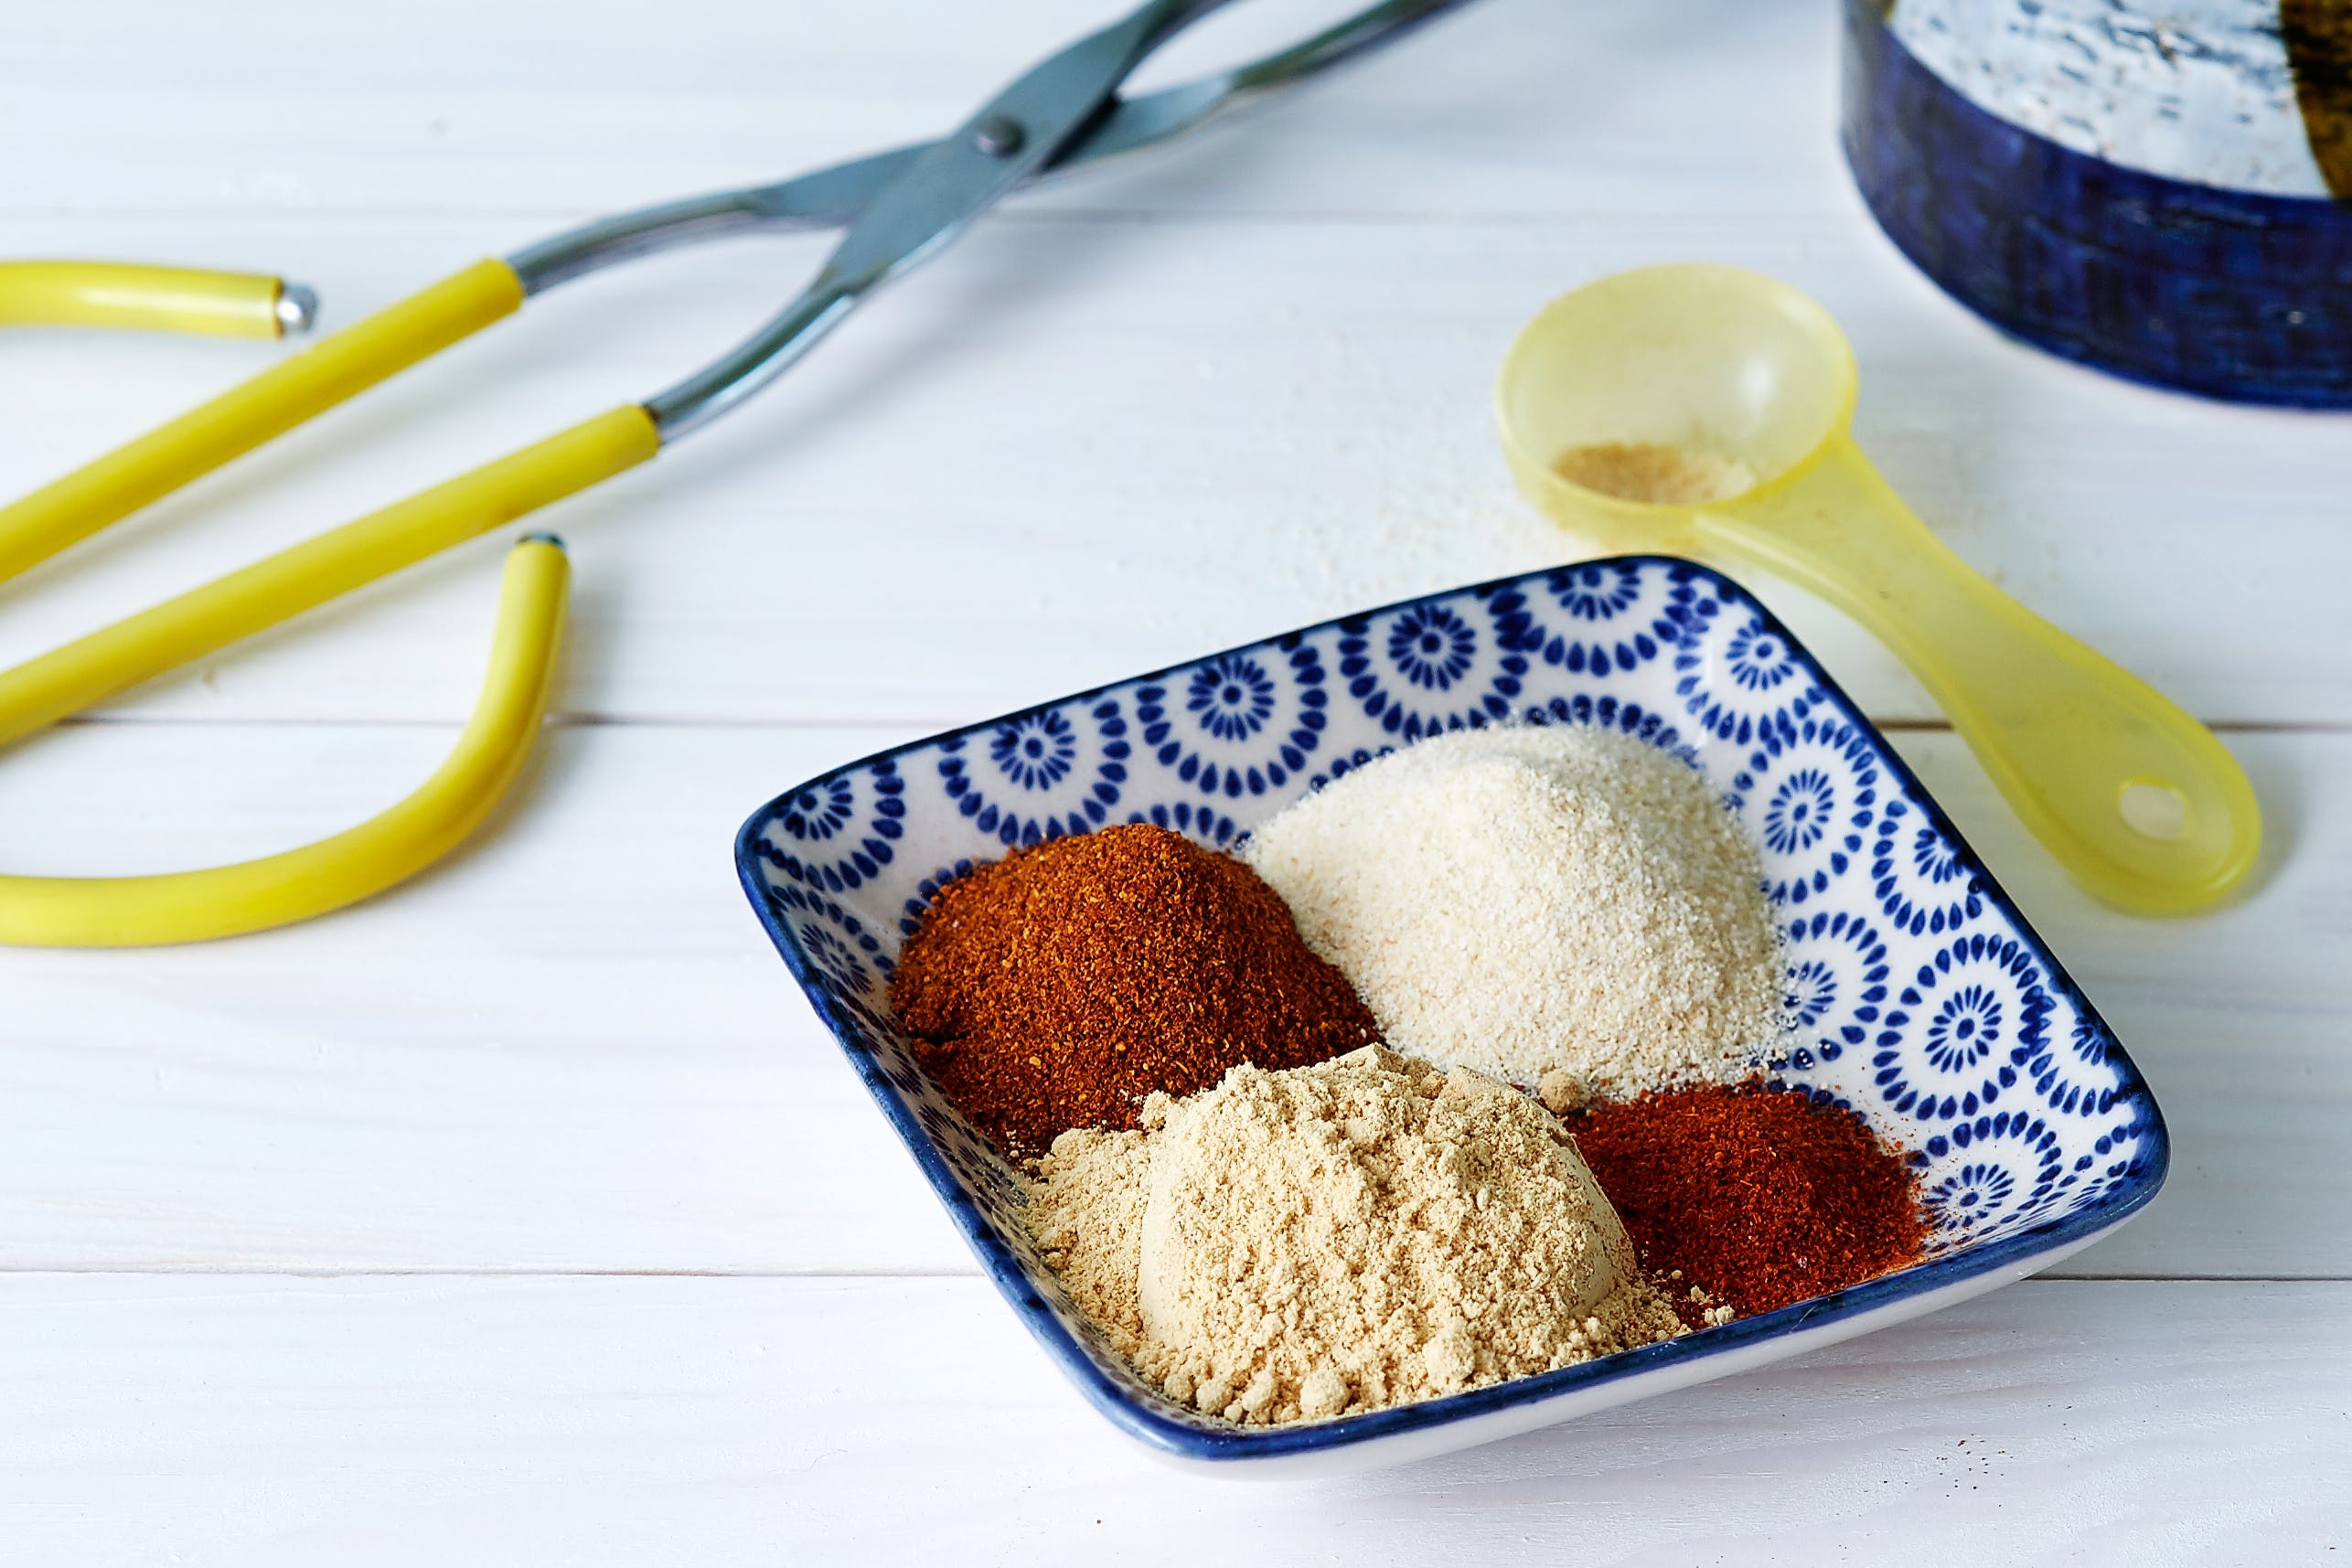 Barbecue seasoning with ginger